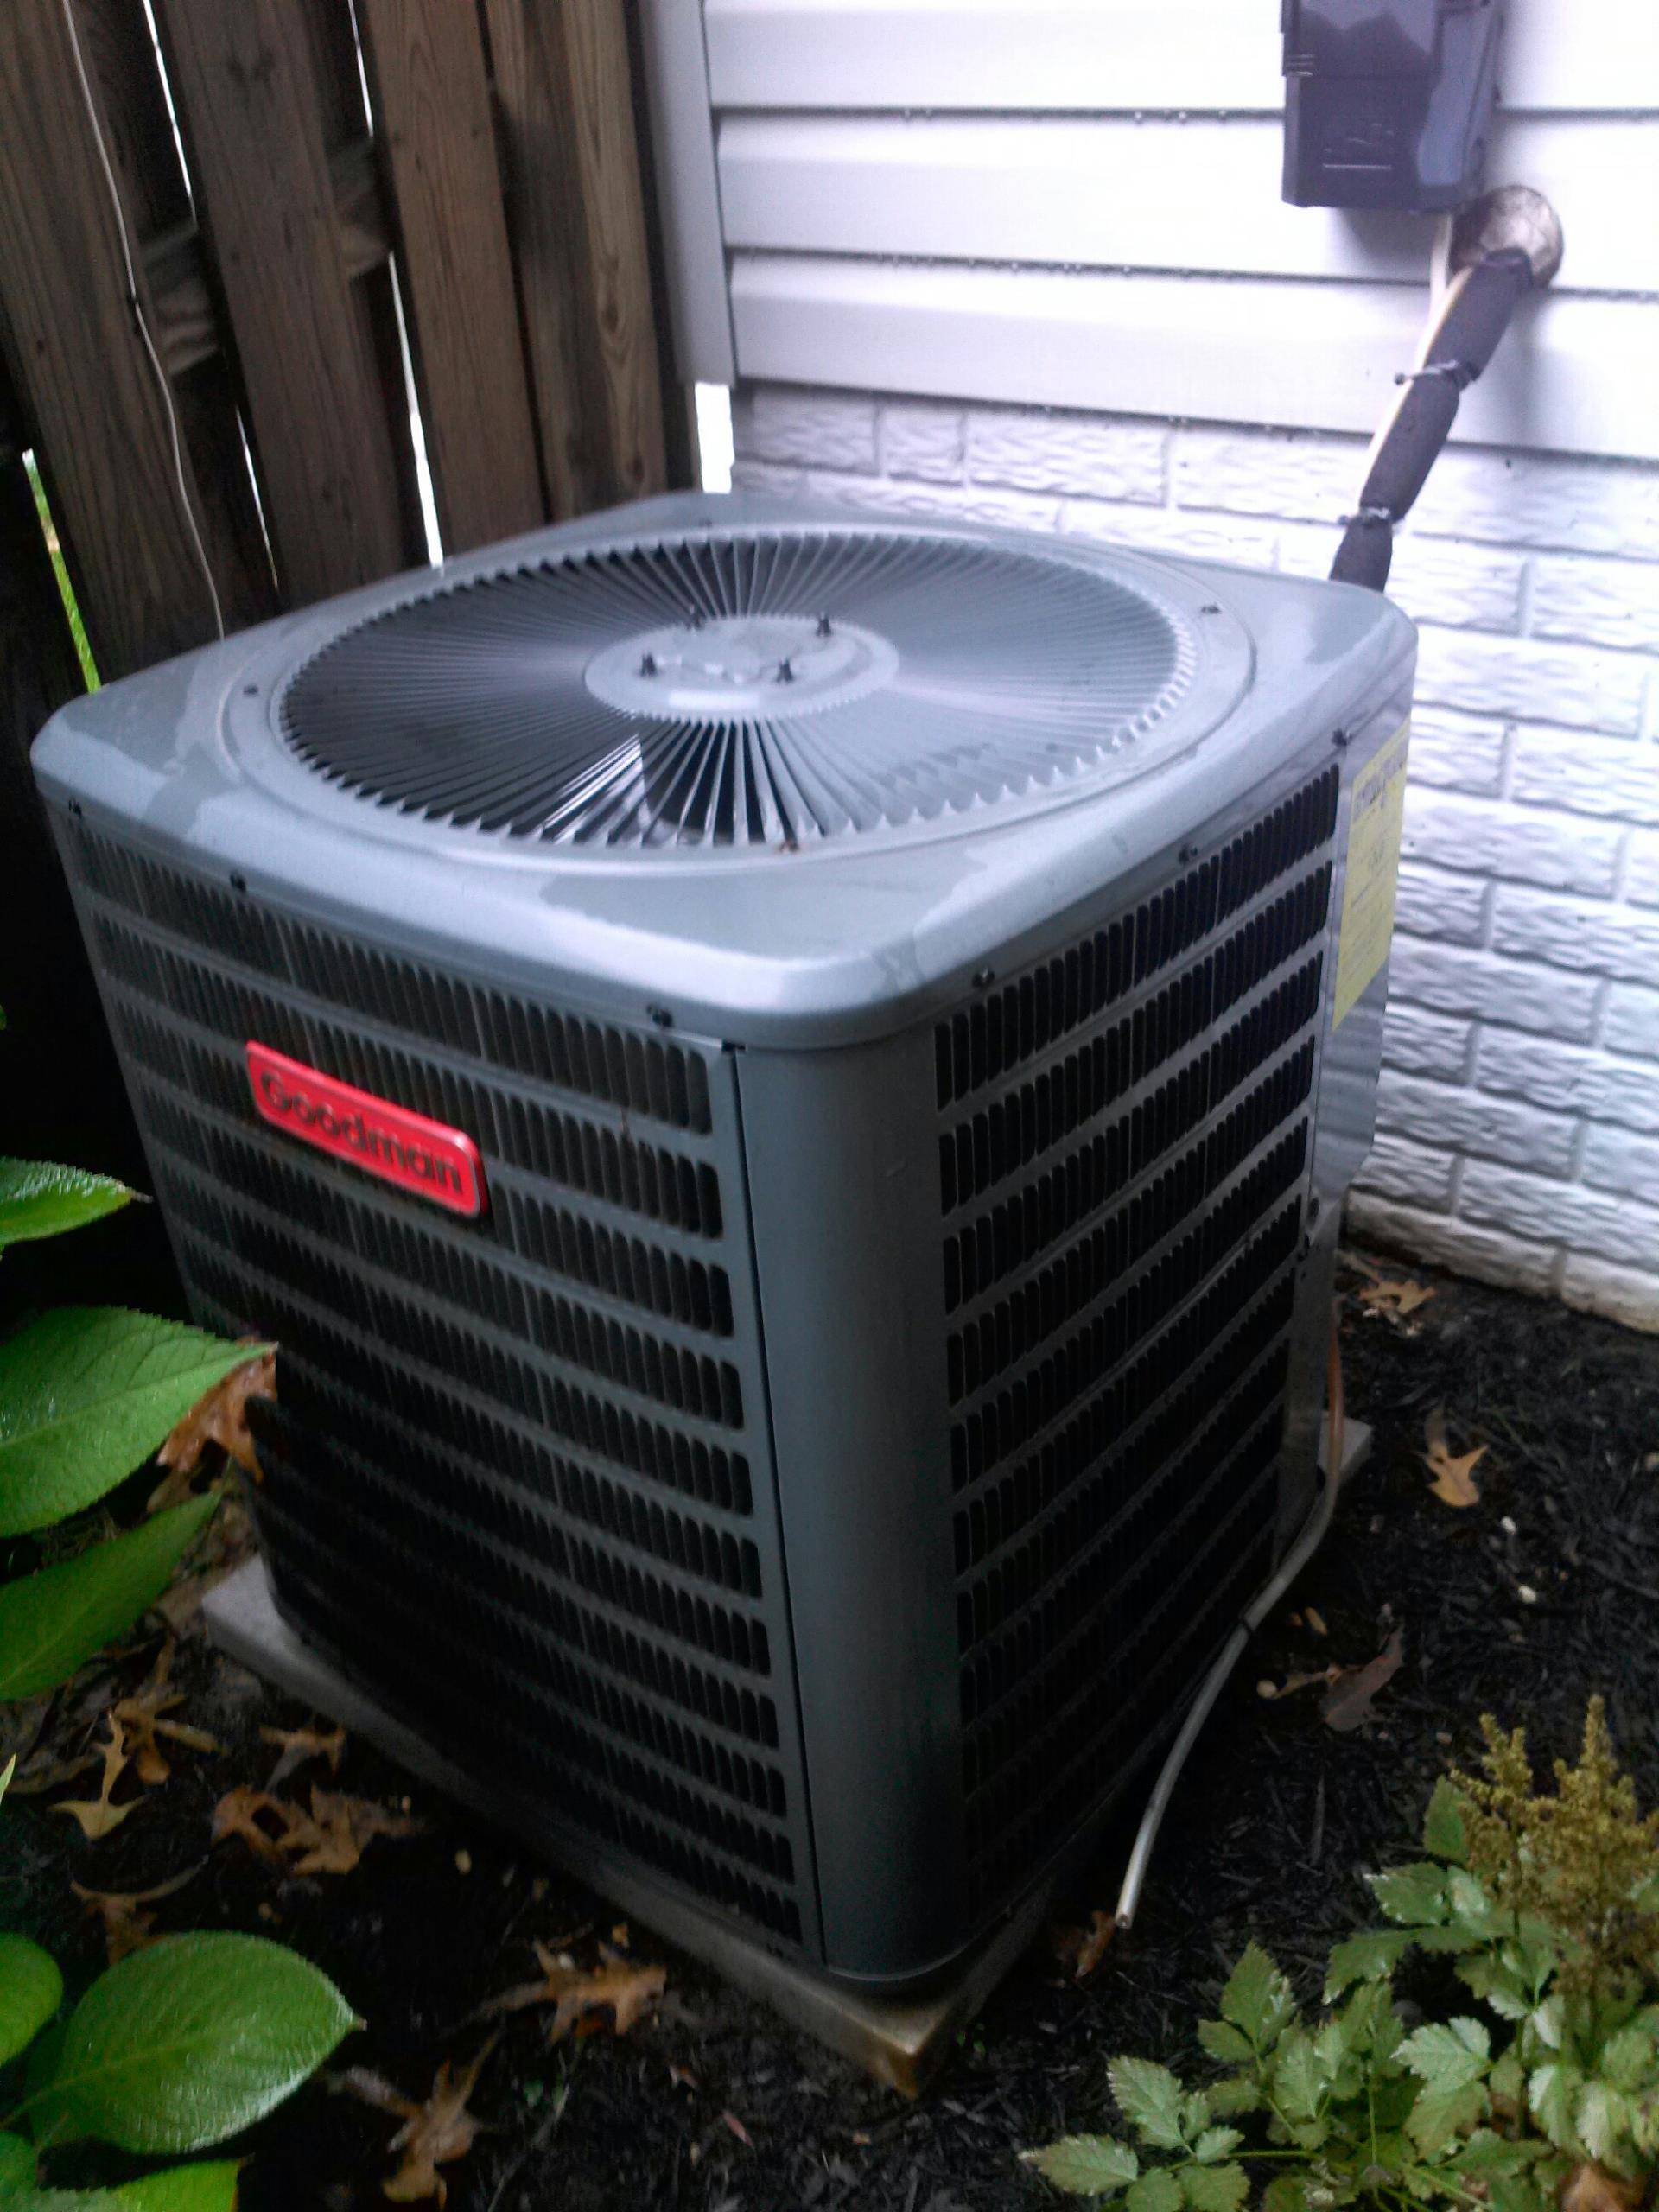 #426425 Furnace Heat Pump & Heating System Repair Service  Most Effective 7655 Air Conditioner Installation And Repair pictures with 1920x2560 px on helpvideos.info - Air Conditioners, Air Coolers and more